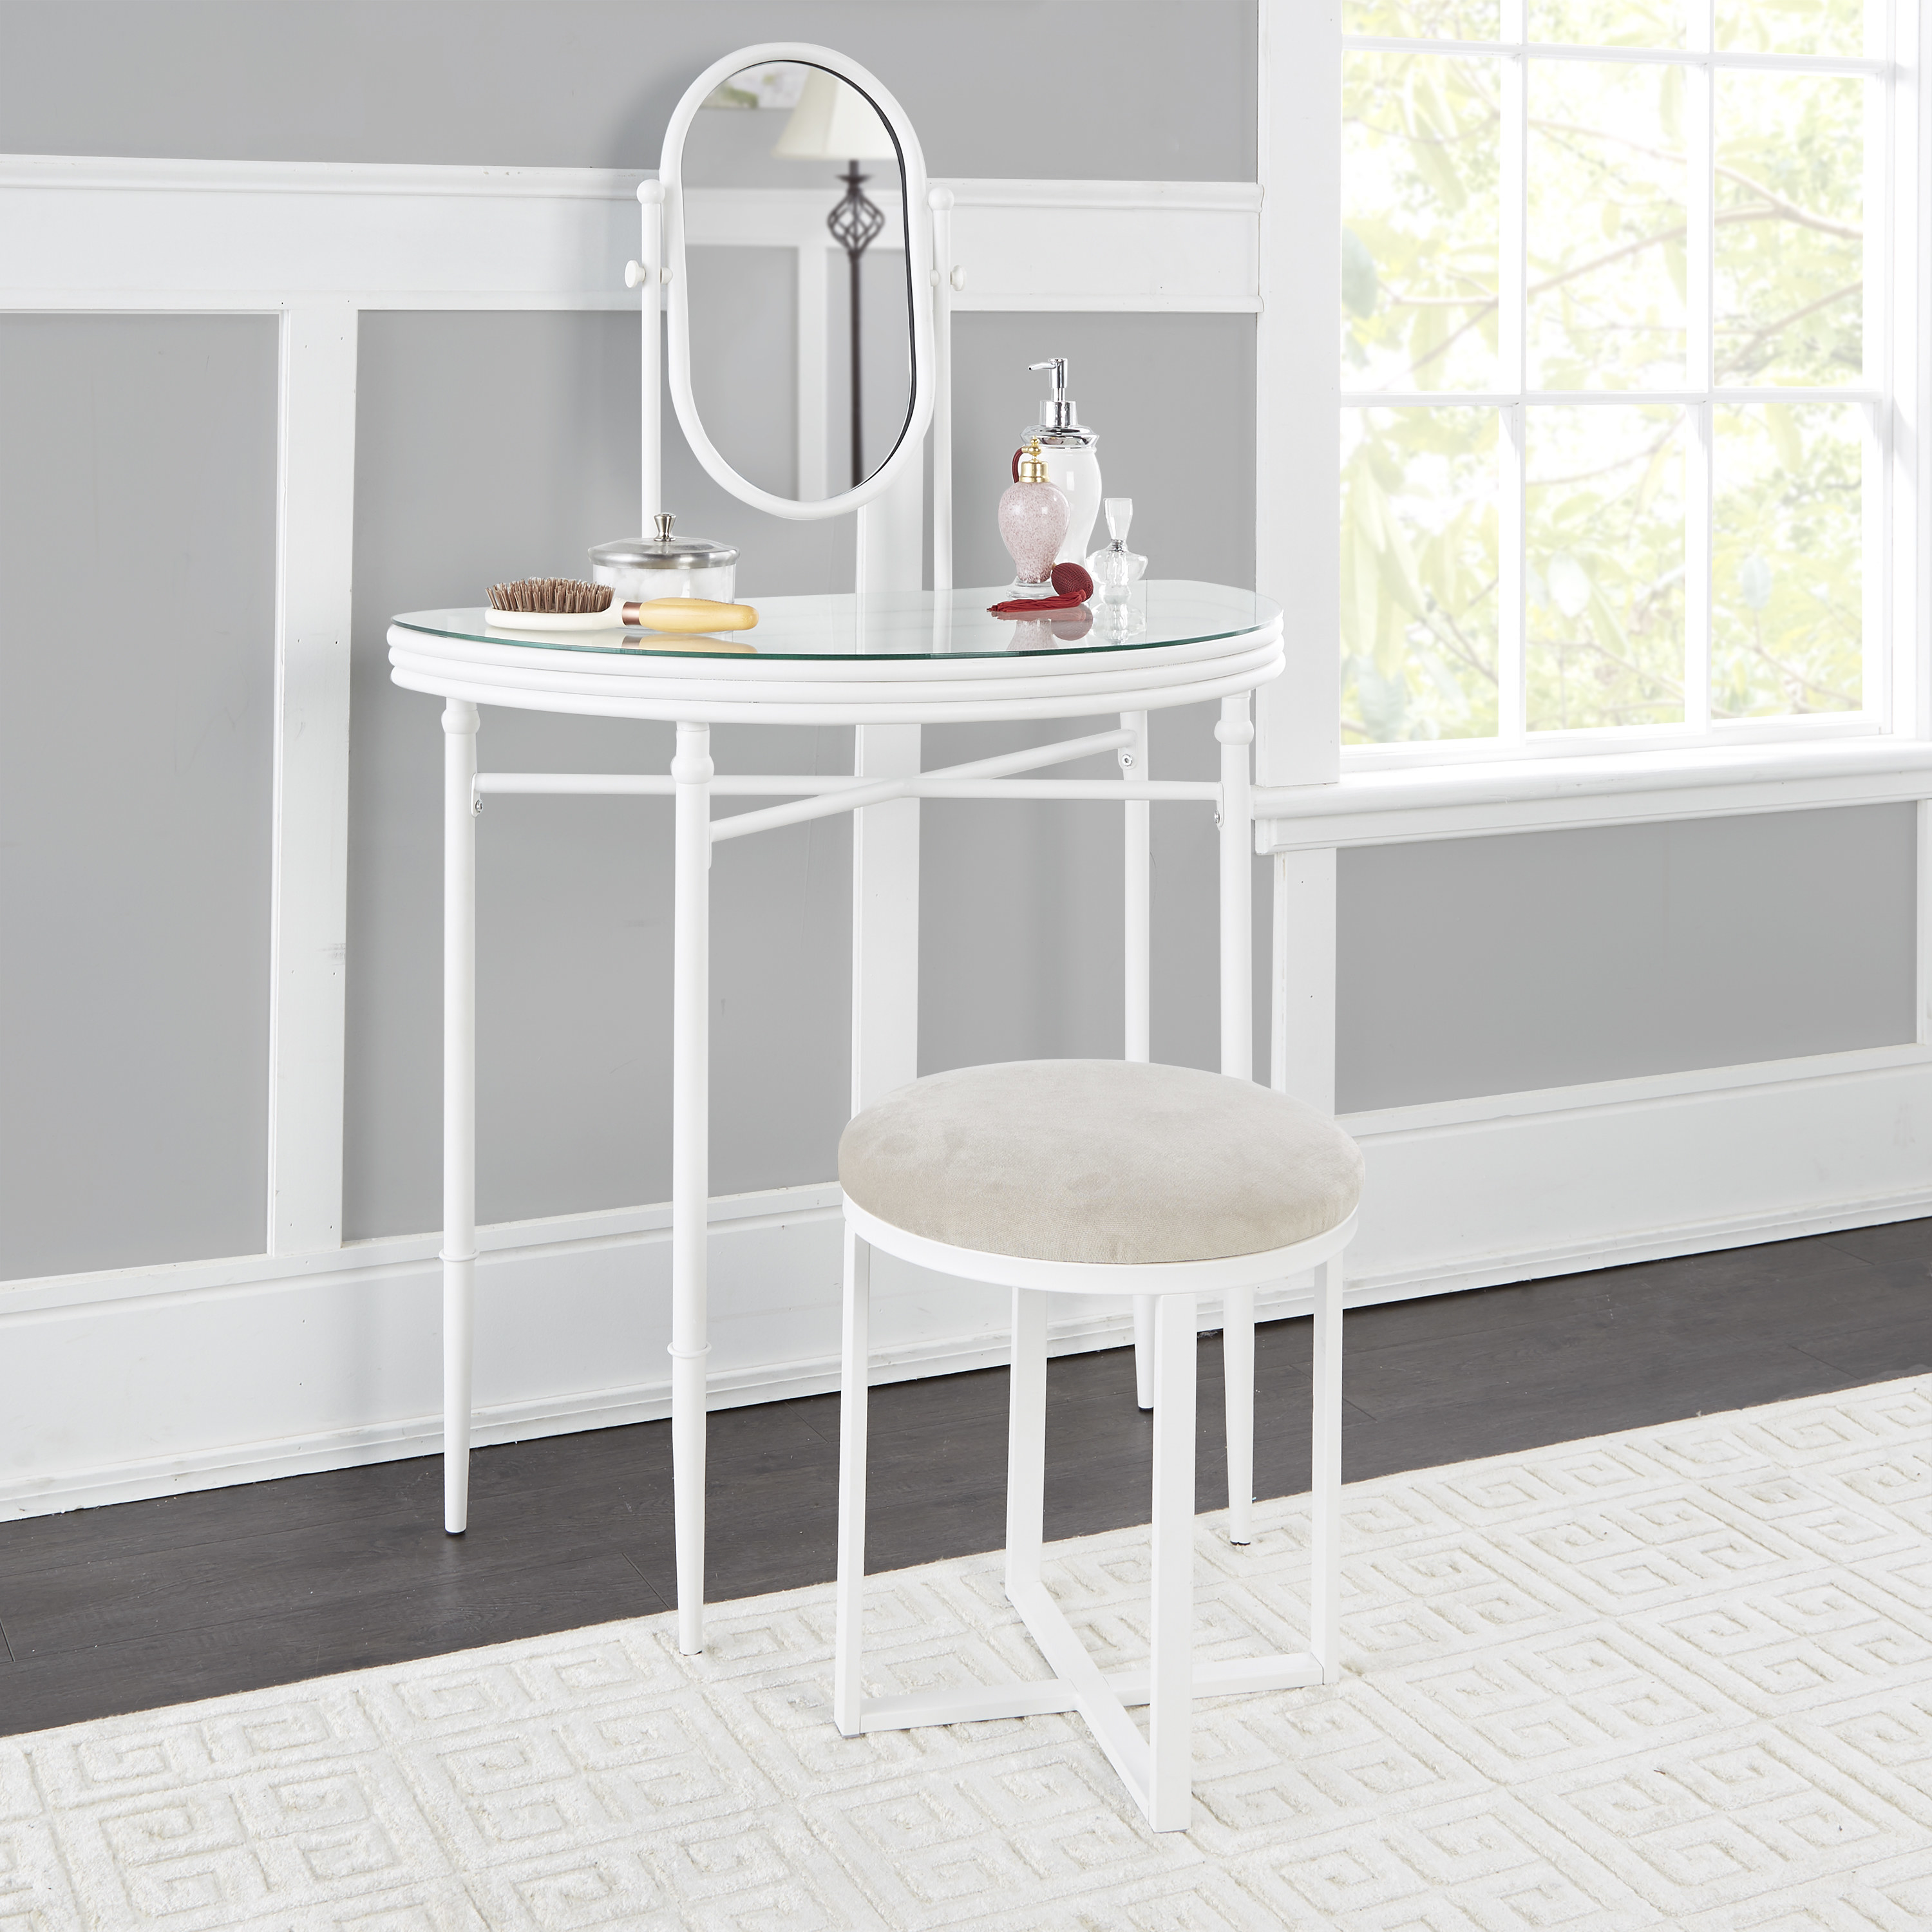 A room with the white mirror, table and stool